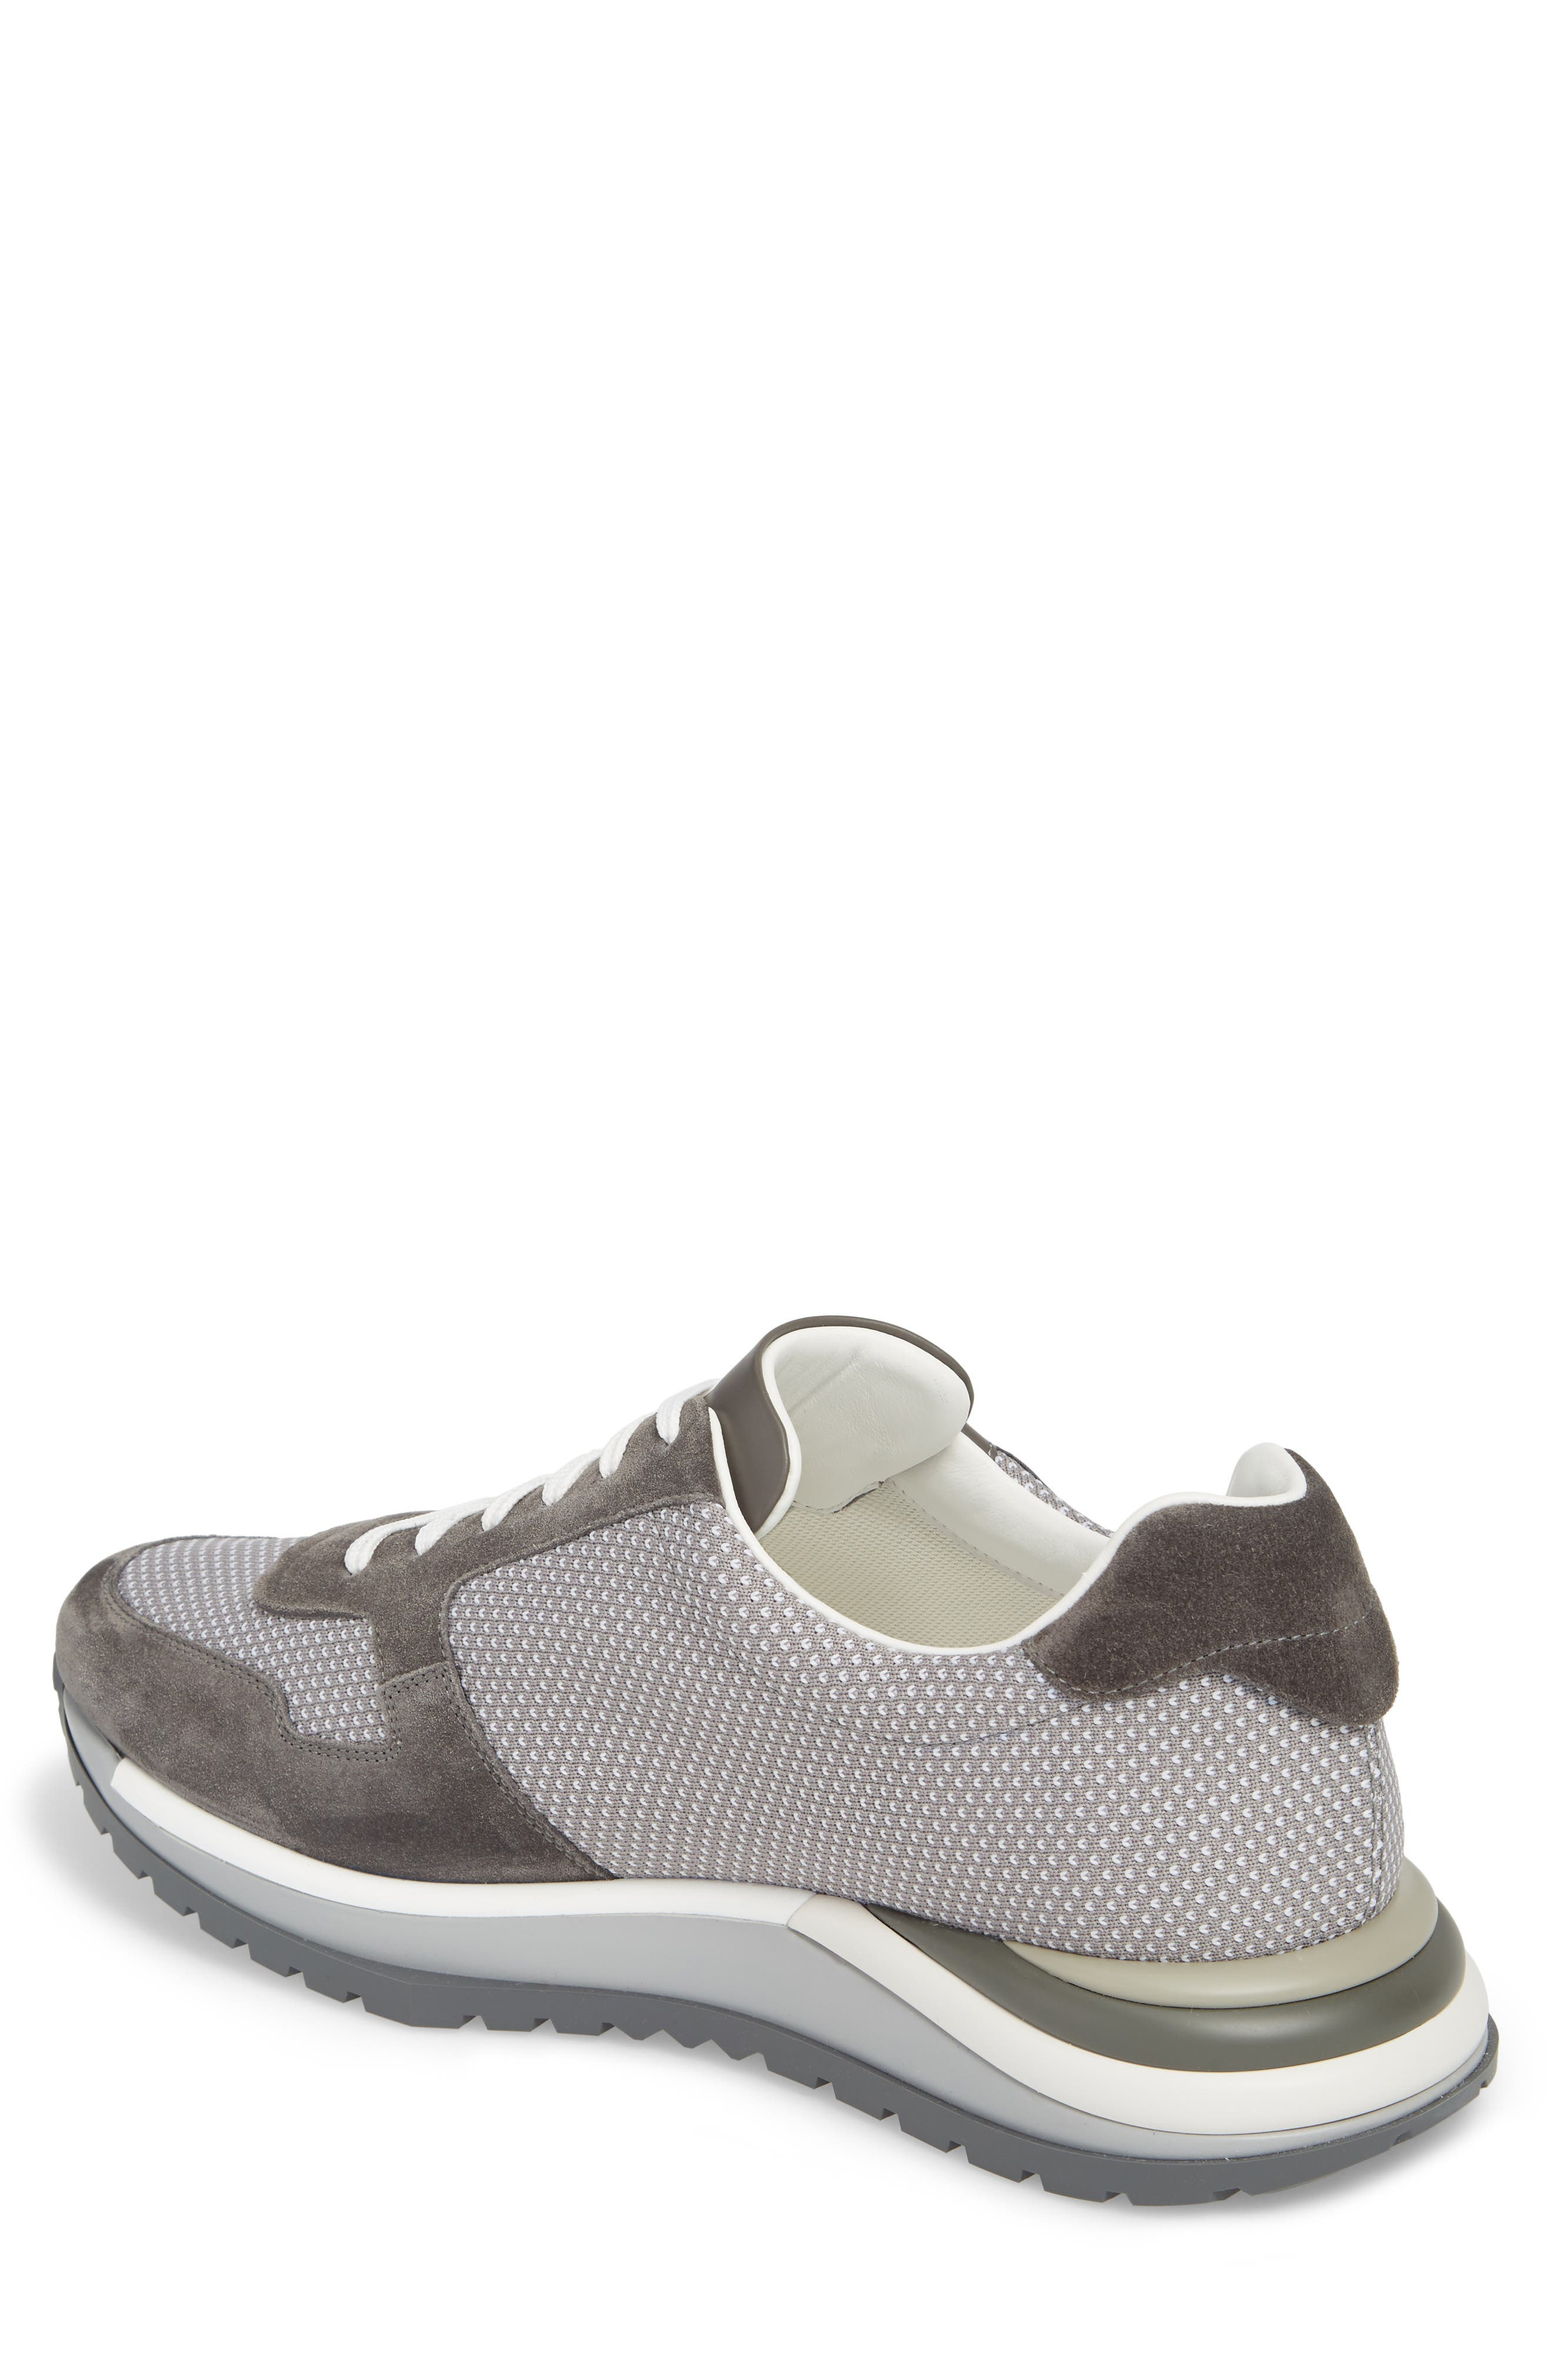 Brooklyn 2 Woven Sneaker,                             Alternate thumbnail 2, color,                             GREY